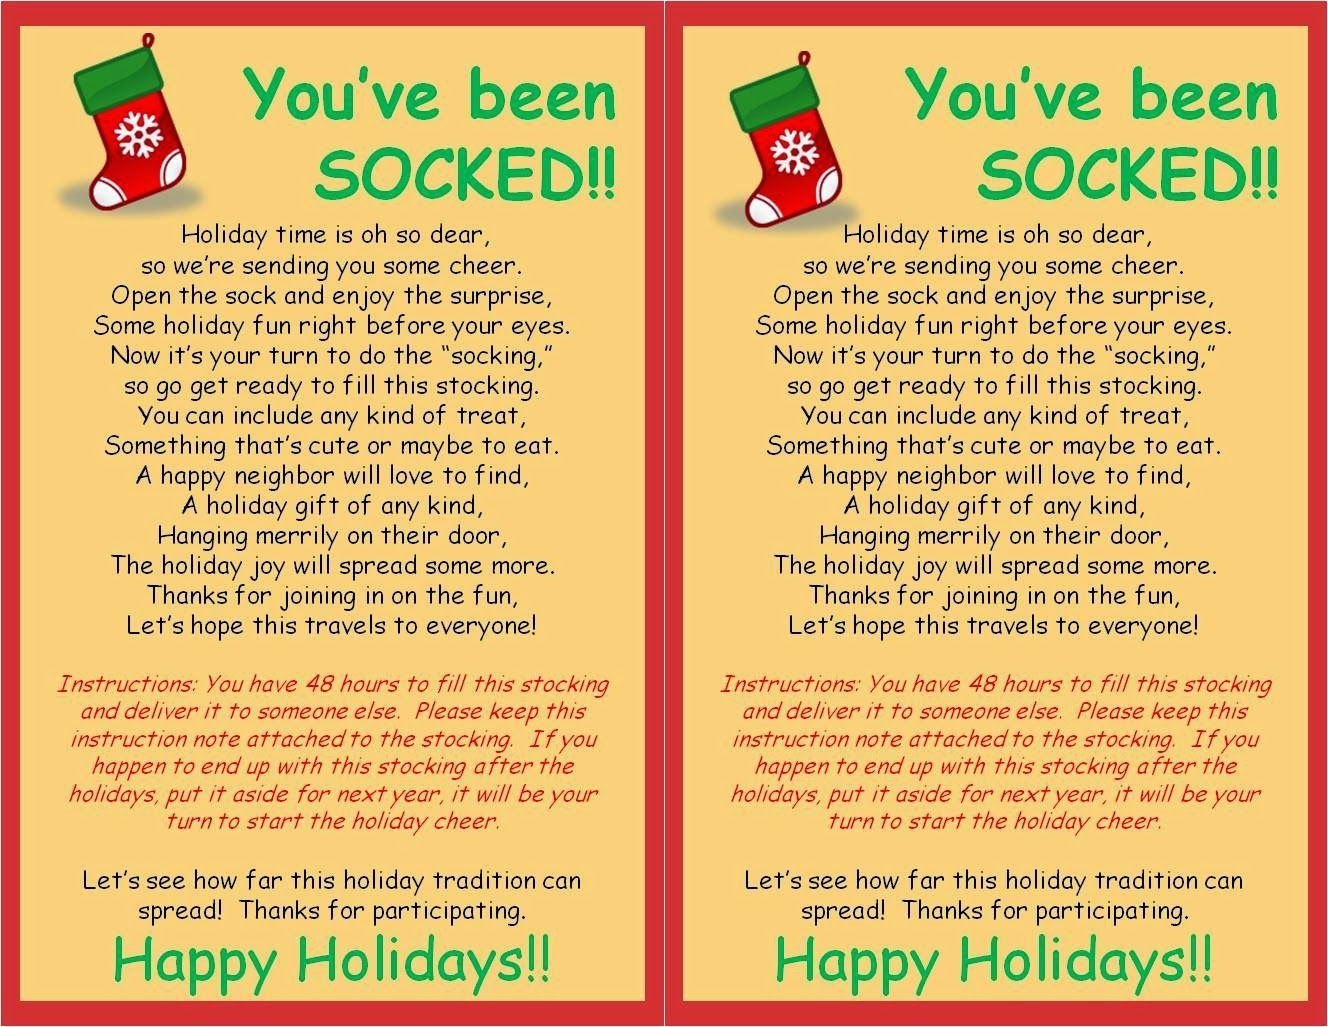 My Friend Stephanie And I Created This Fun Christmas Service - You Ve Been Socked Free Printable